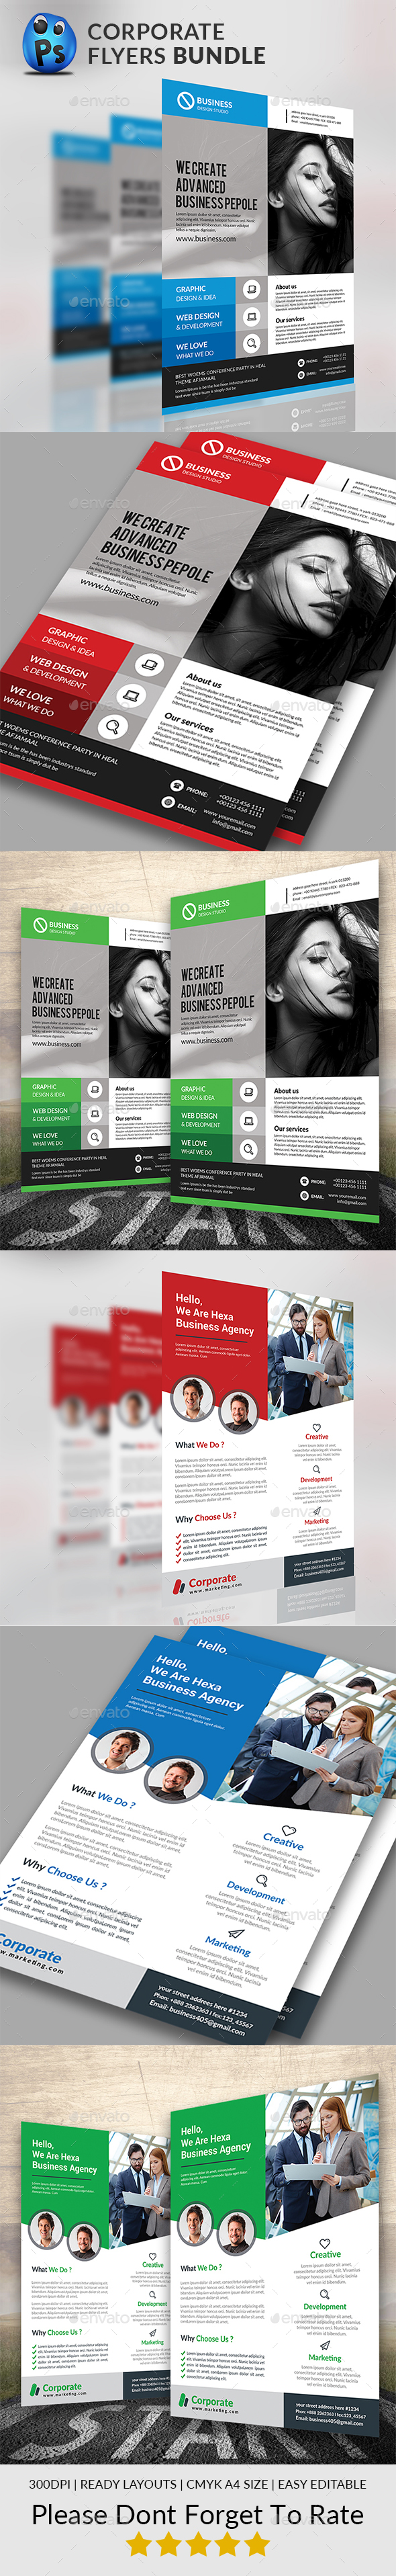 Corporate Flyers Bundle - Corporate Flyers